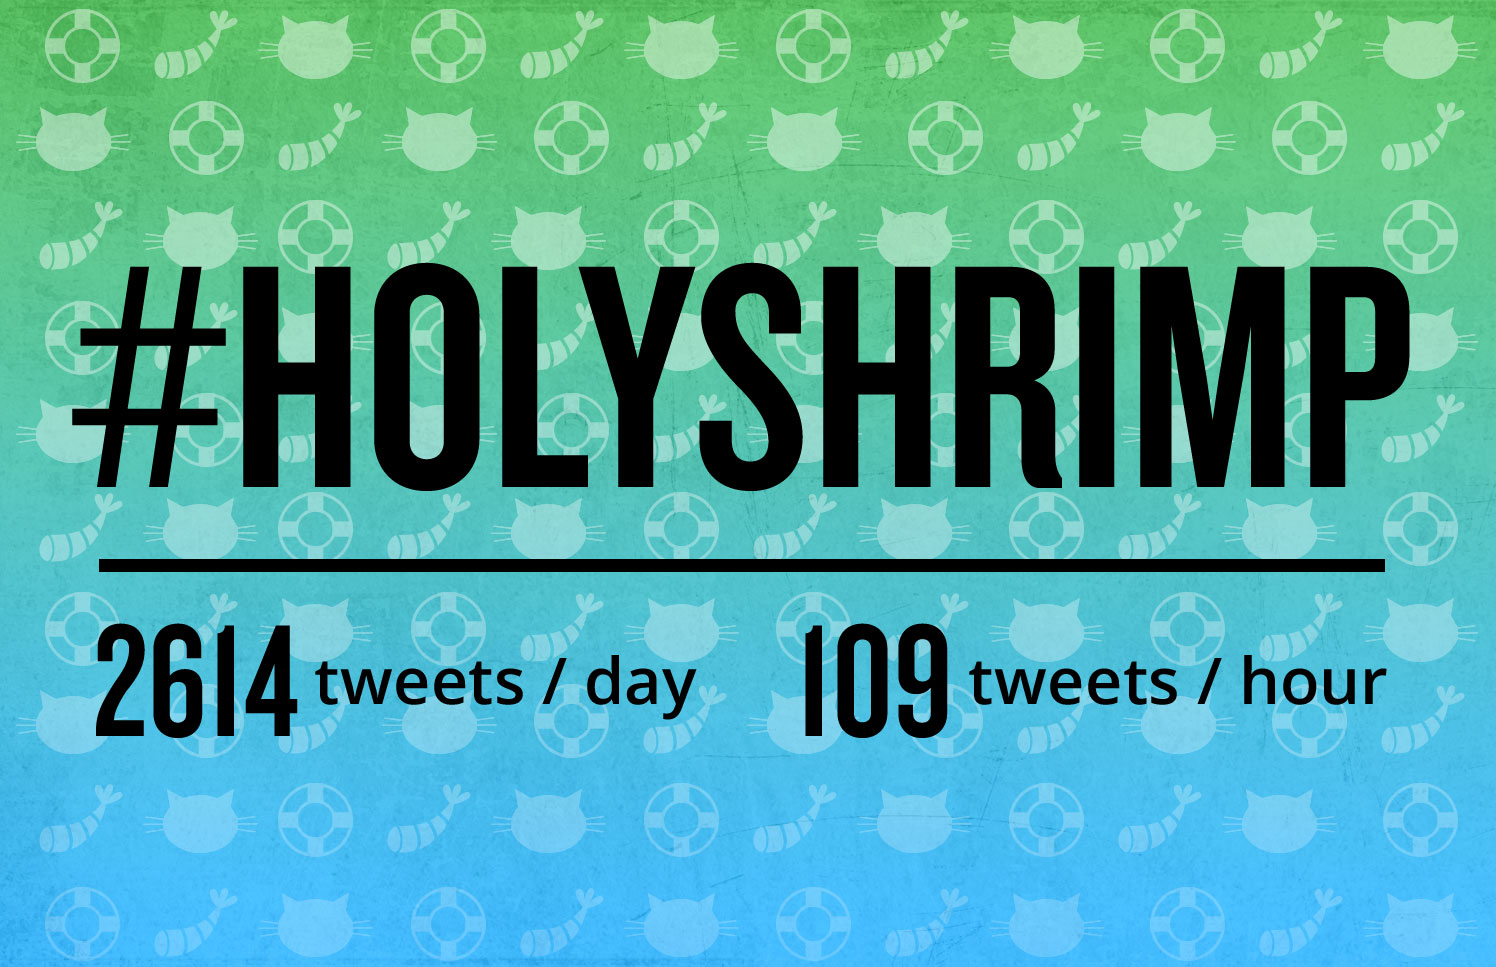 Gradient pattern overlayed with #holyshrimp 2614 tweets/day 109 tweets/hour